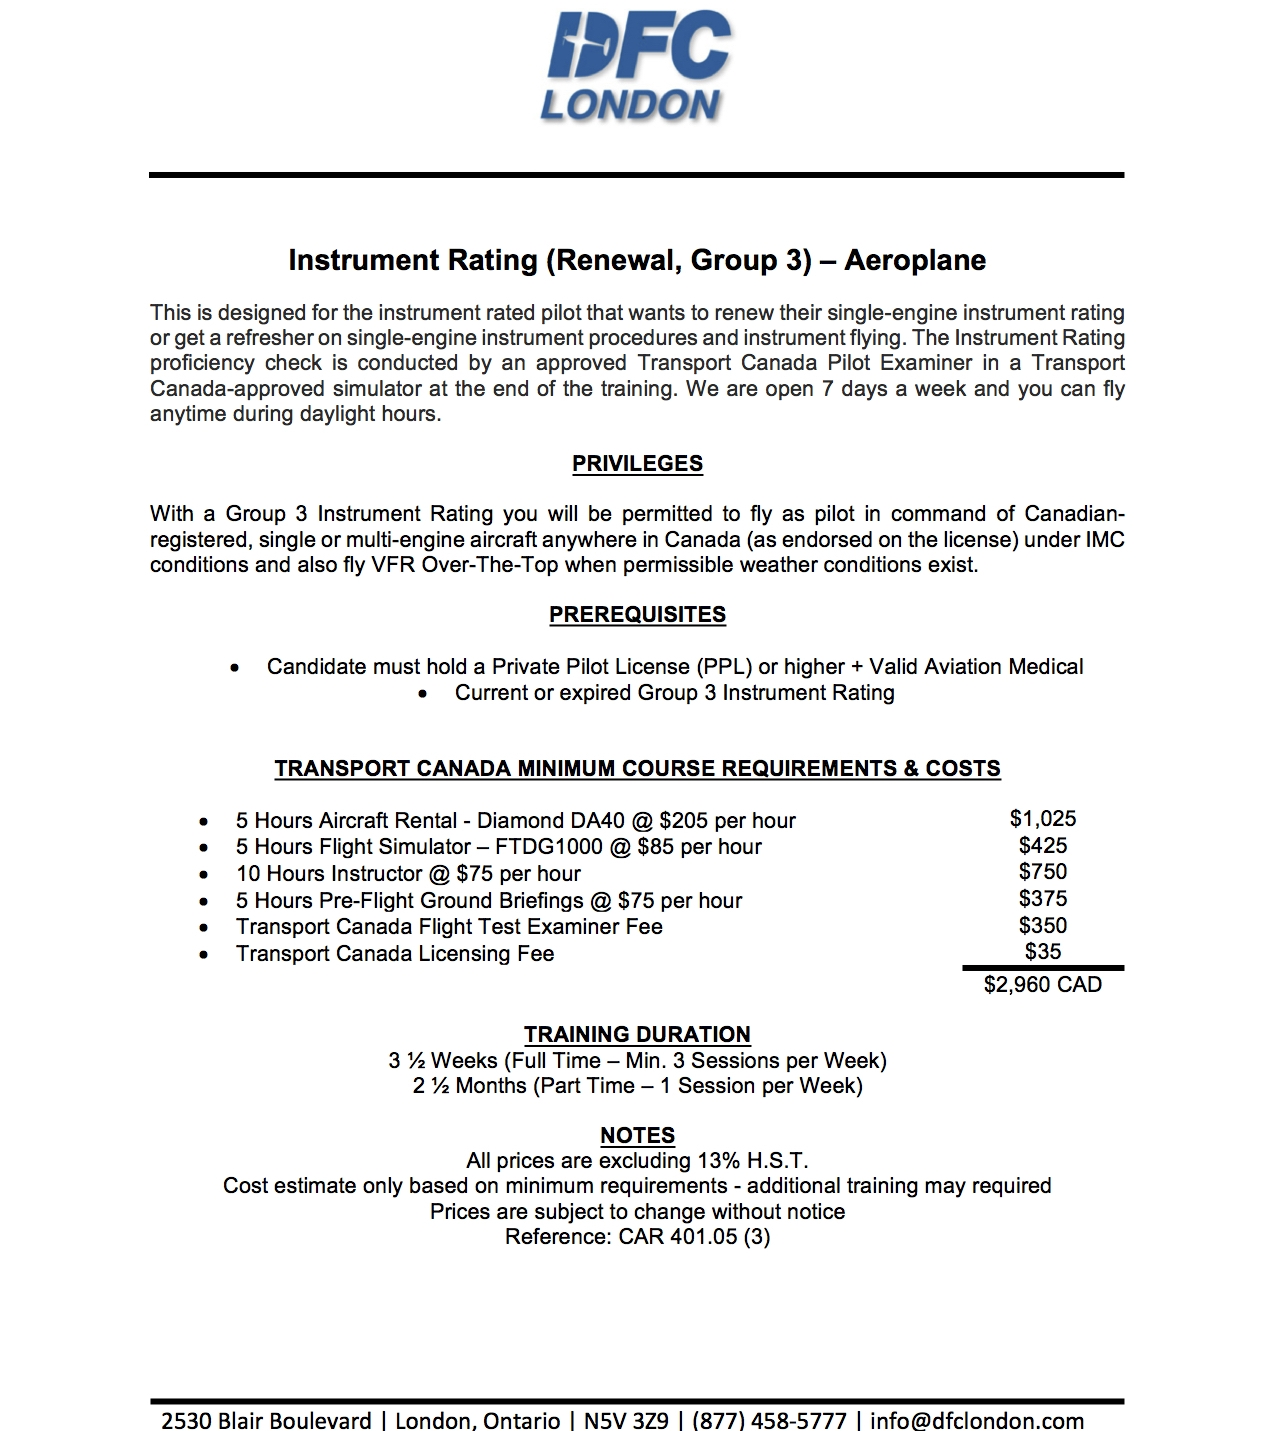 DFC London | Instrument Rating - RenewalG3.jpg